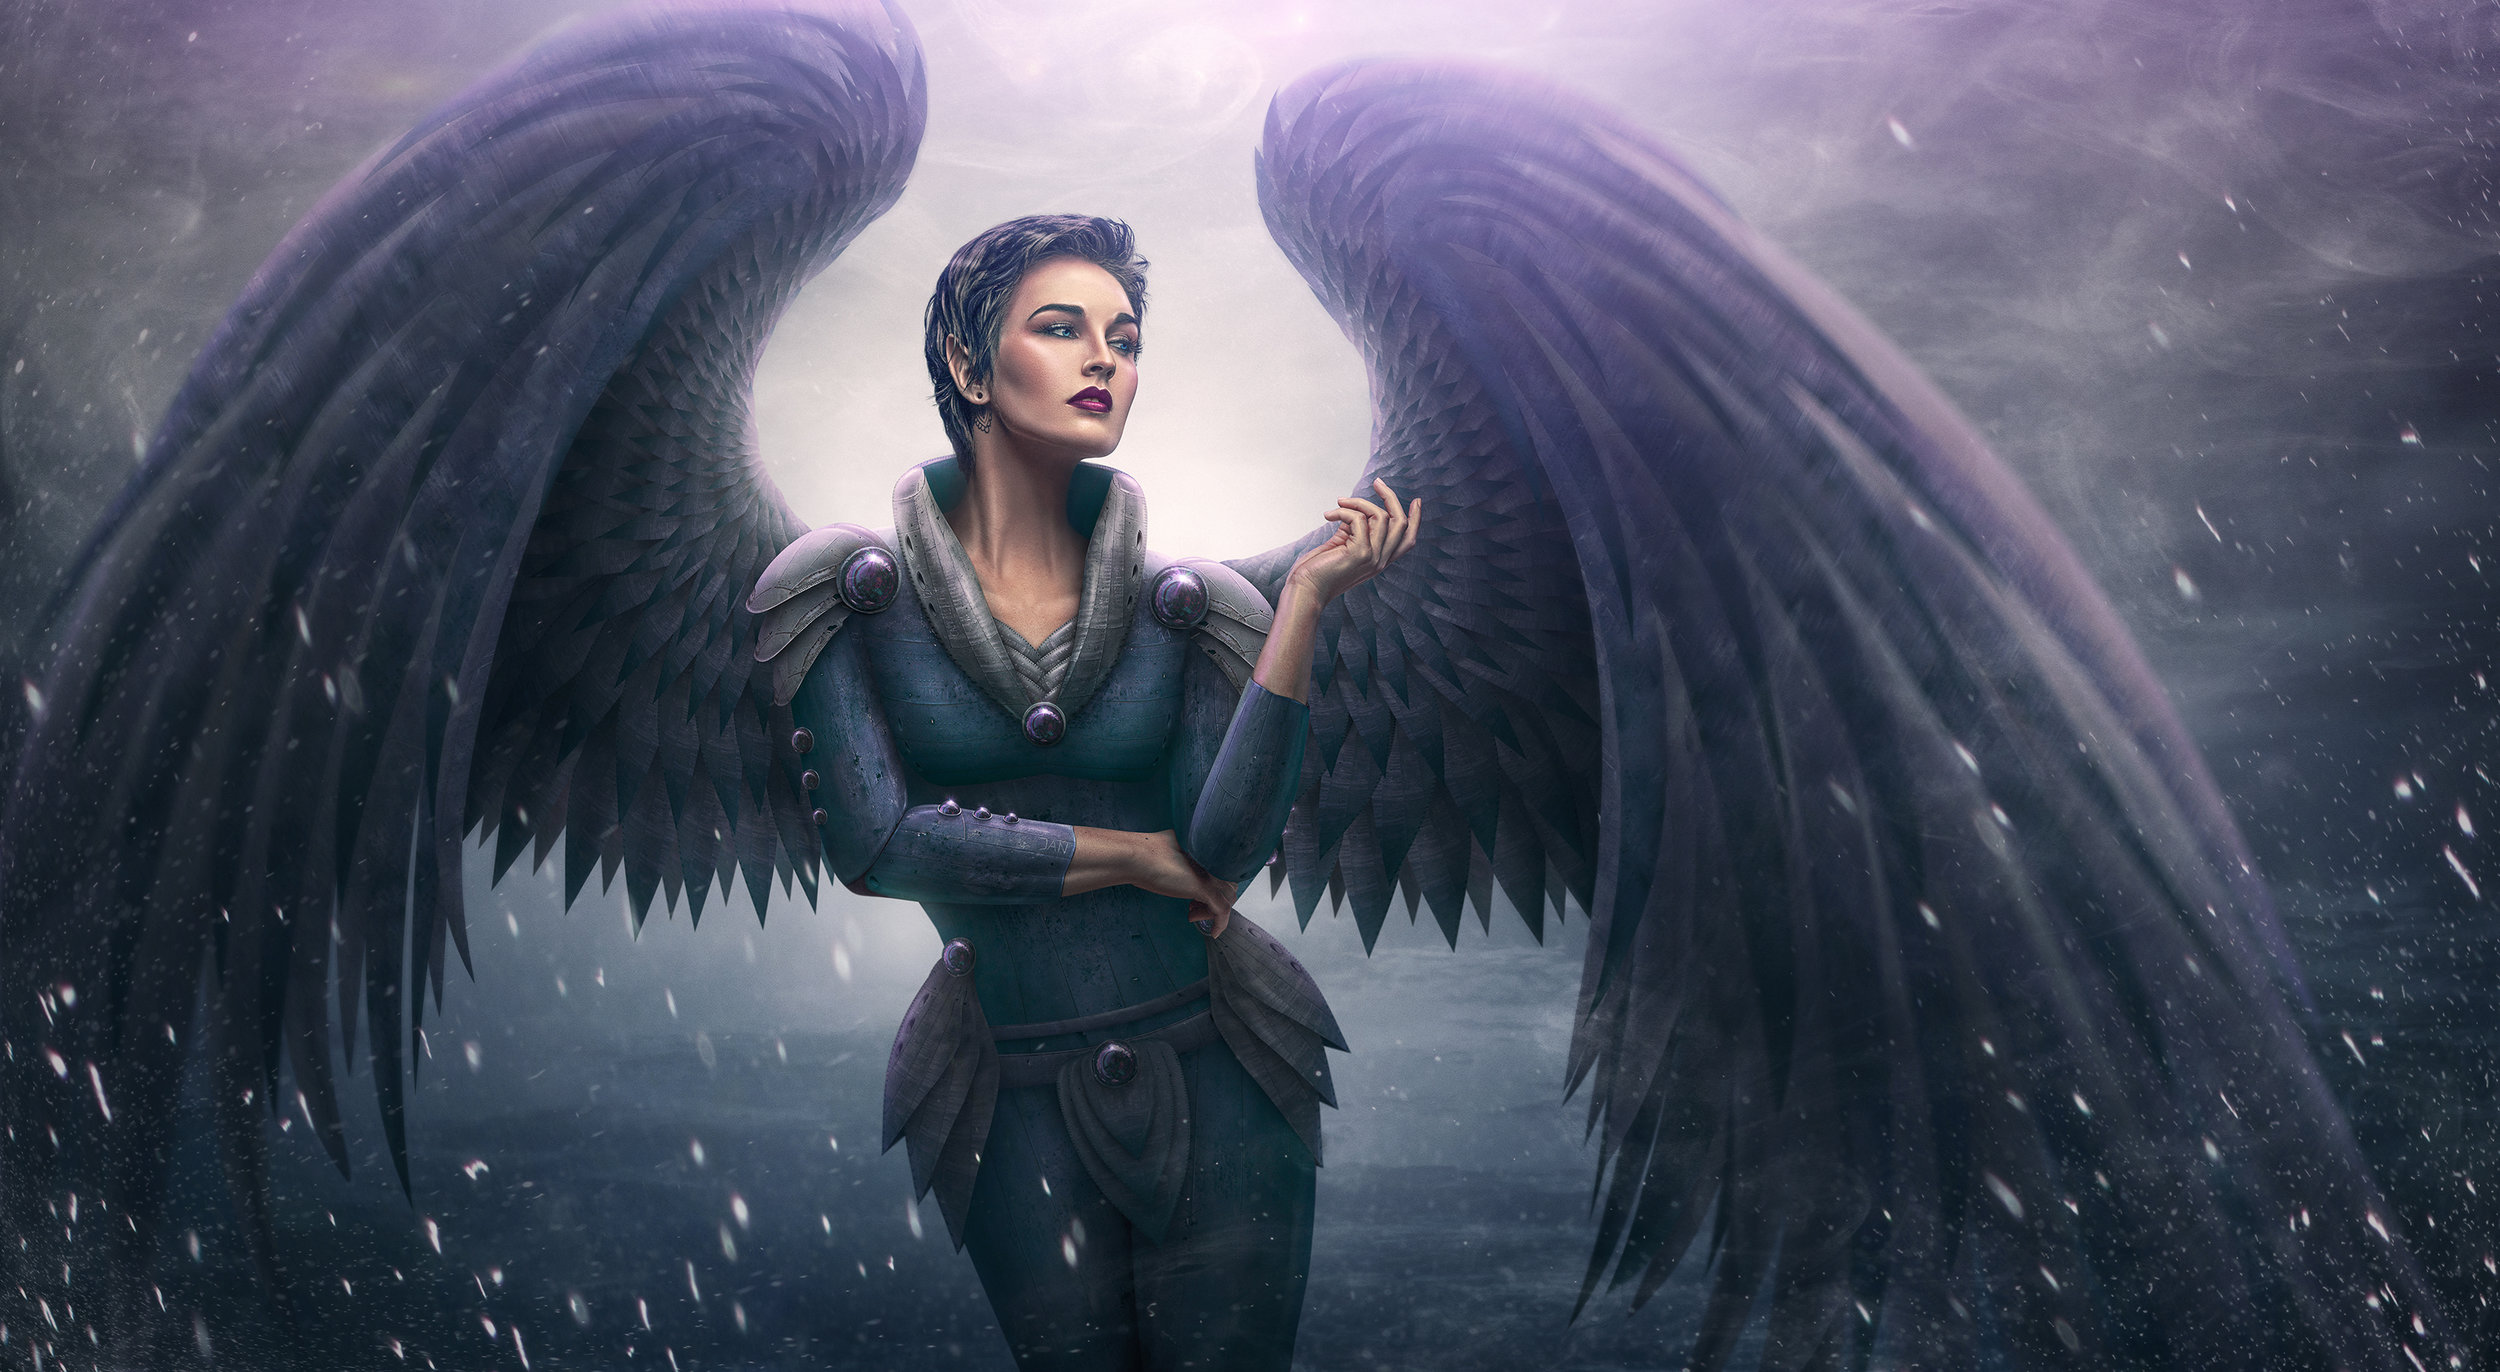 The Armored Angel